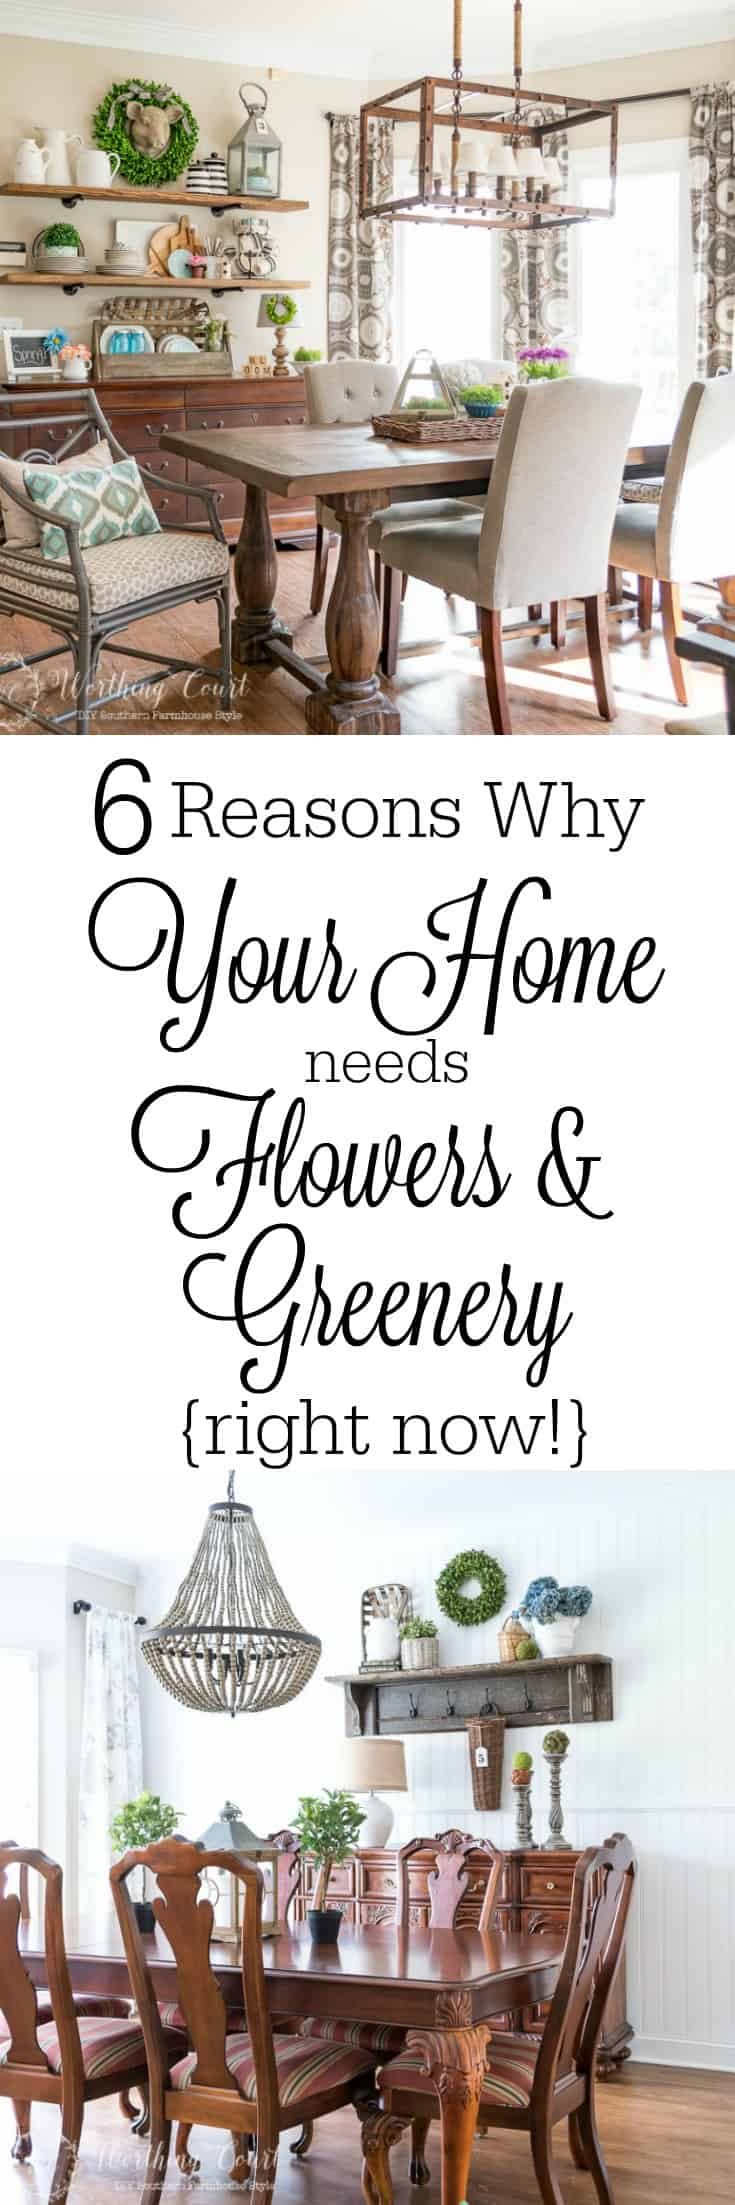 6 Reasons Why Your Home Needs Flowers and Greenery Right Now